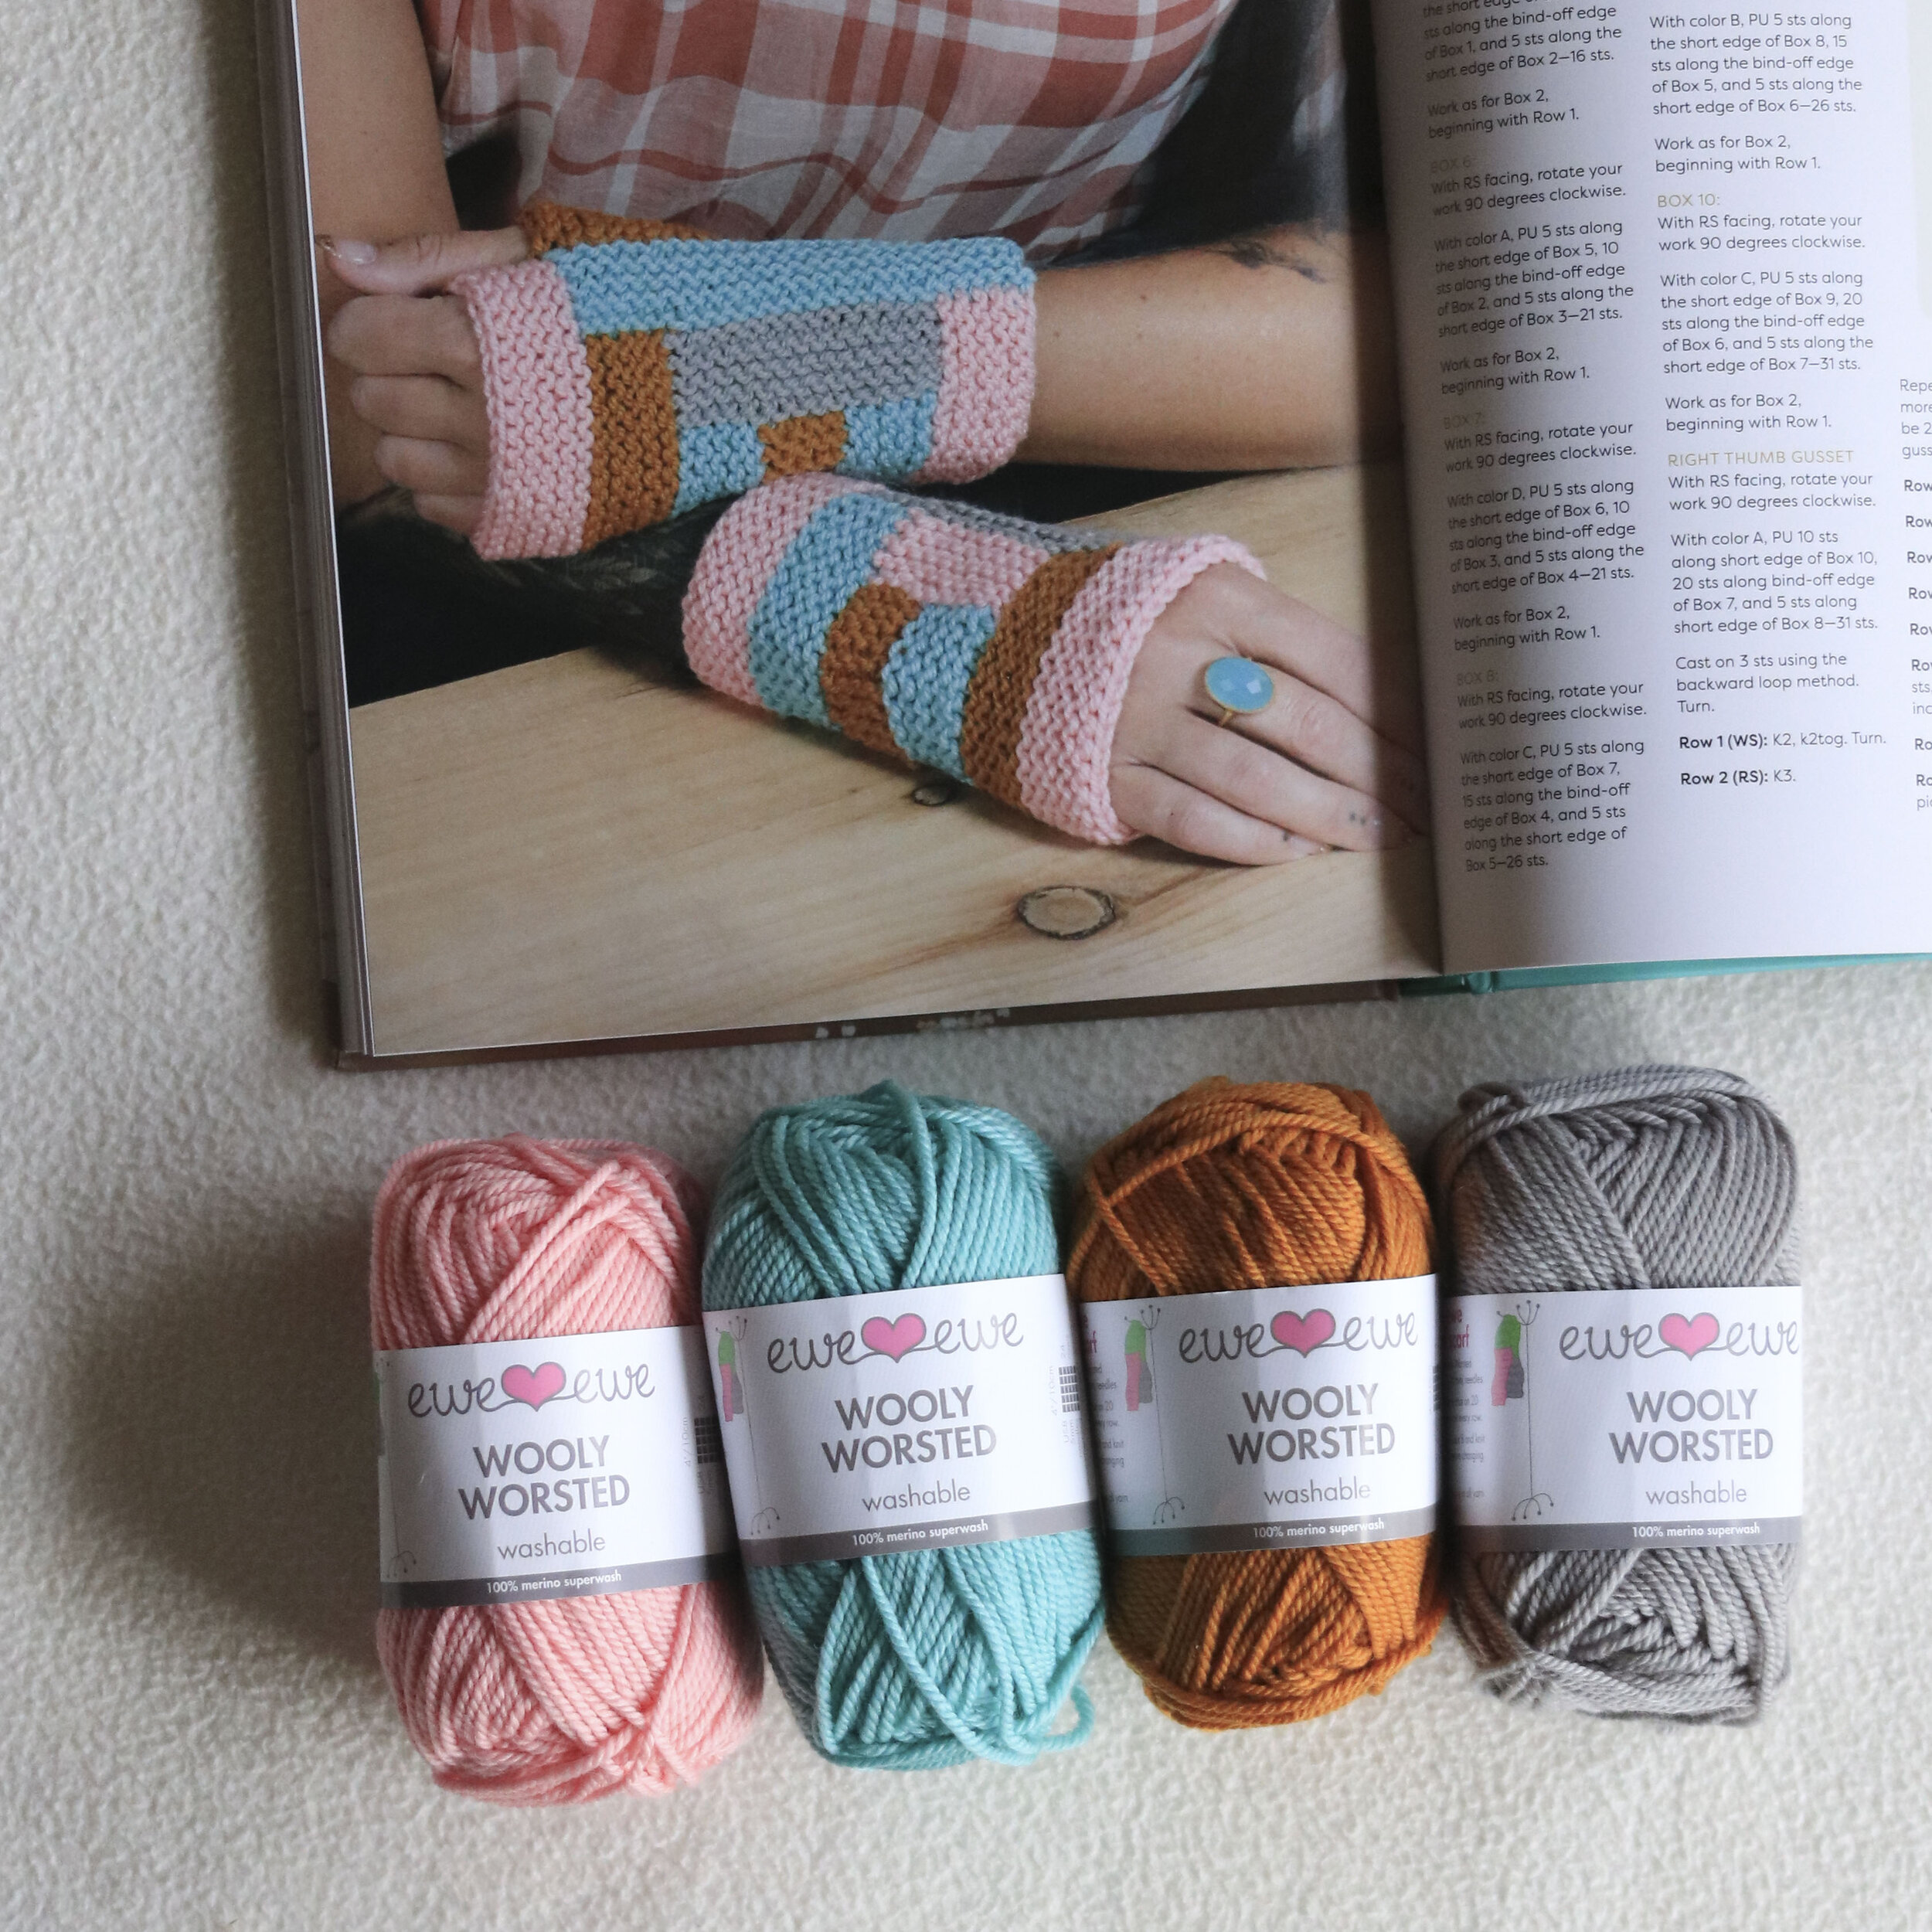 Warme Mitts Wooly Worsted yarn kit from Ewe Ewe Yarns